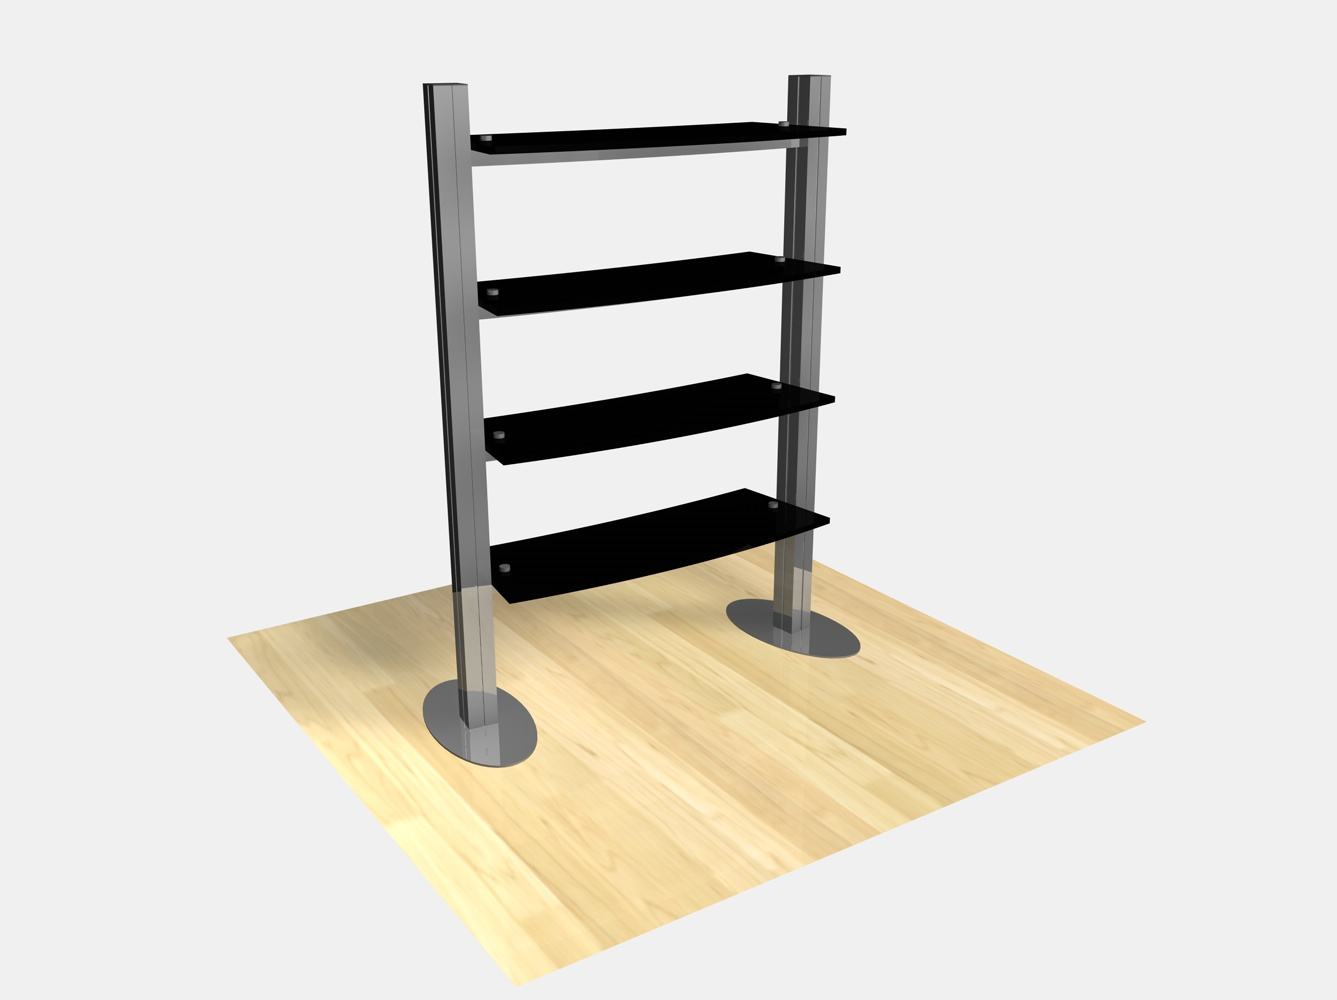 Exhibition Stand With Shelves : Exhibit design search re freestanding shelf